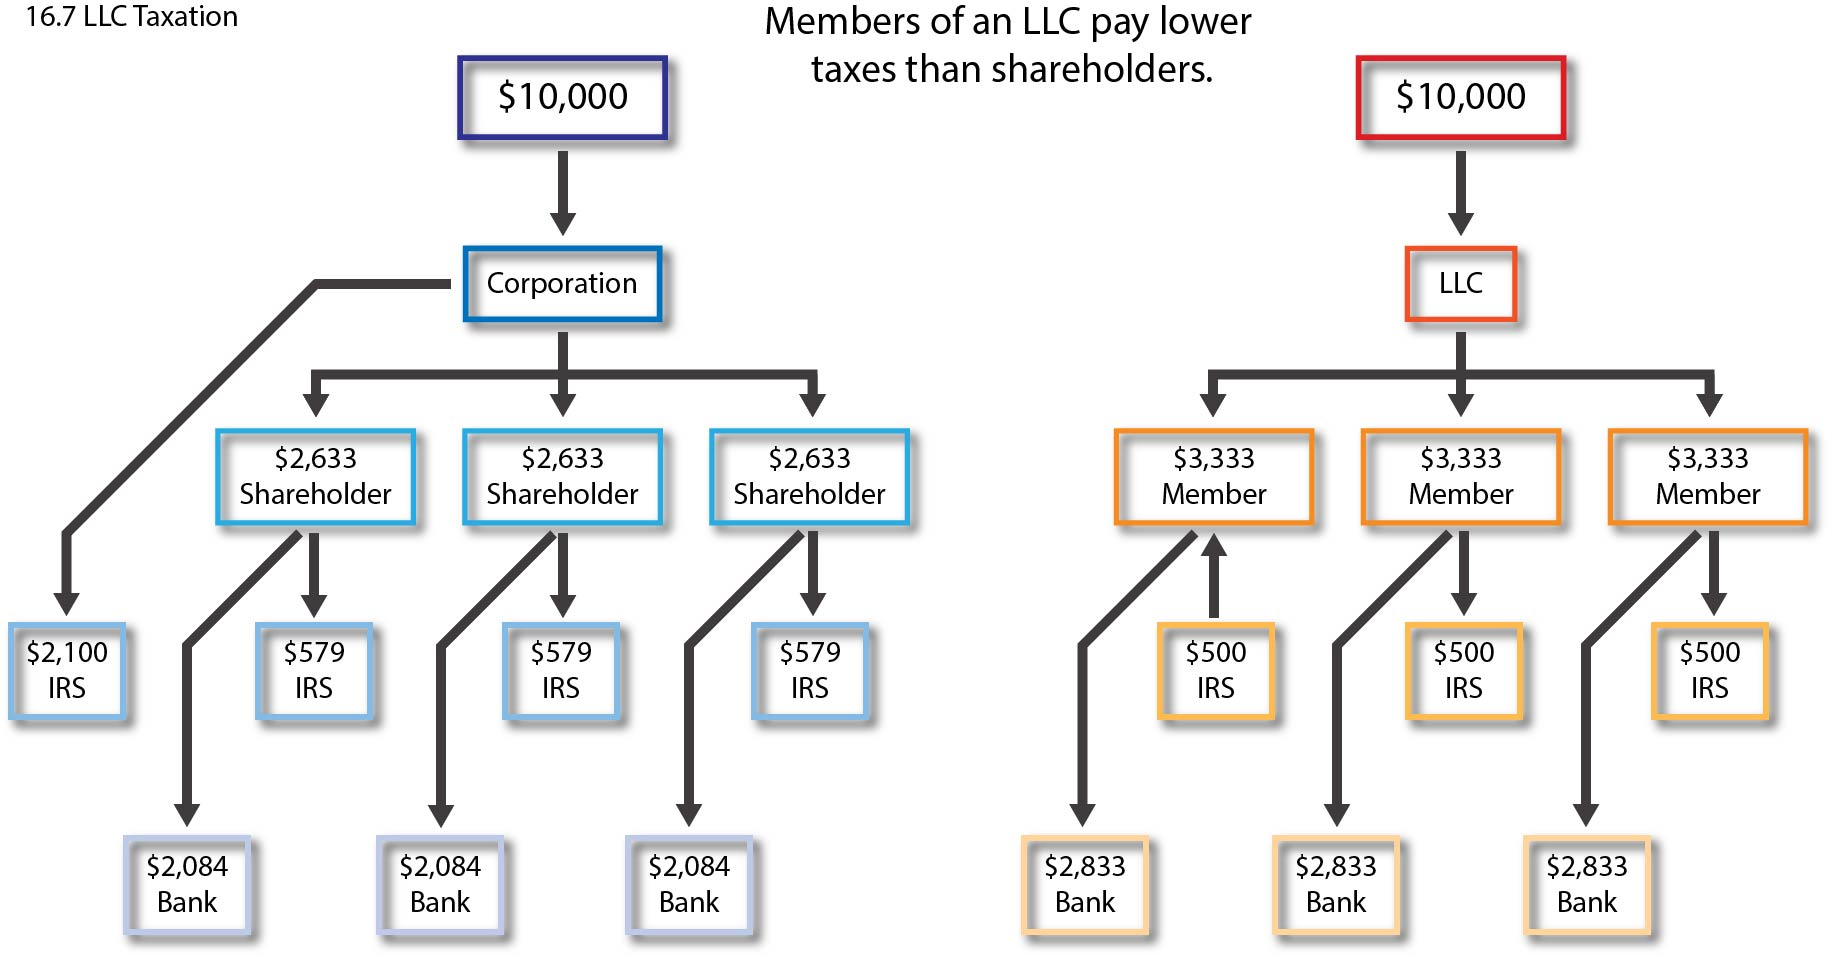 Graphic showing members of an LLC pay lower taxes than corporate shareholders